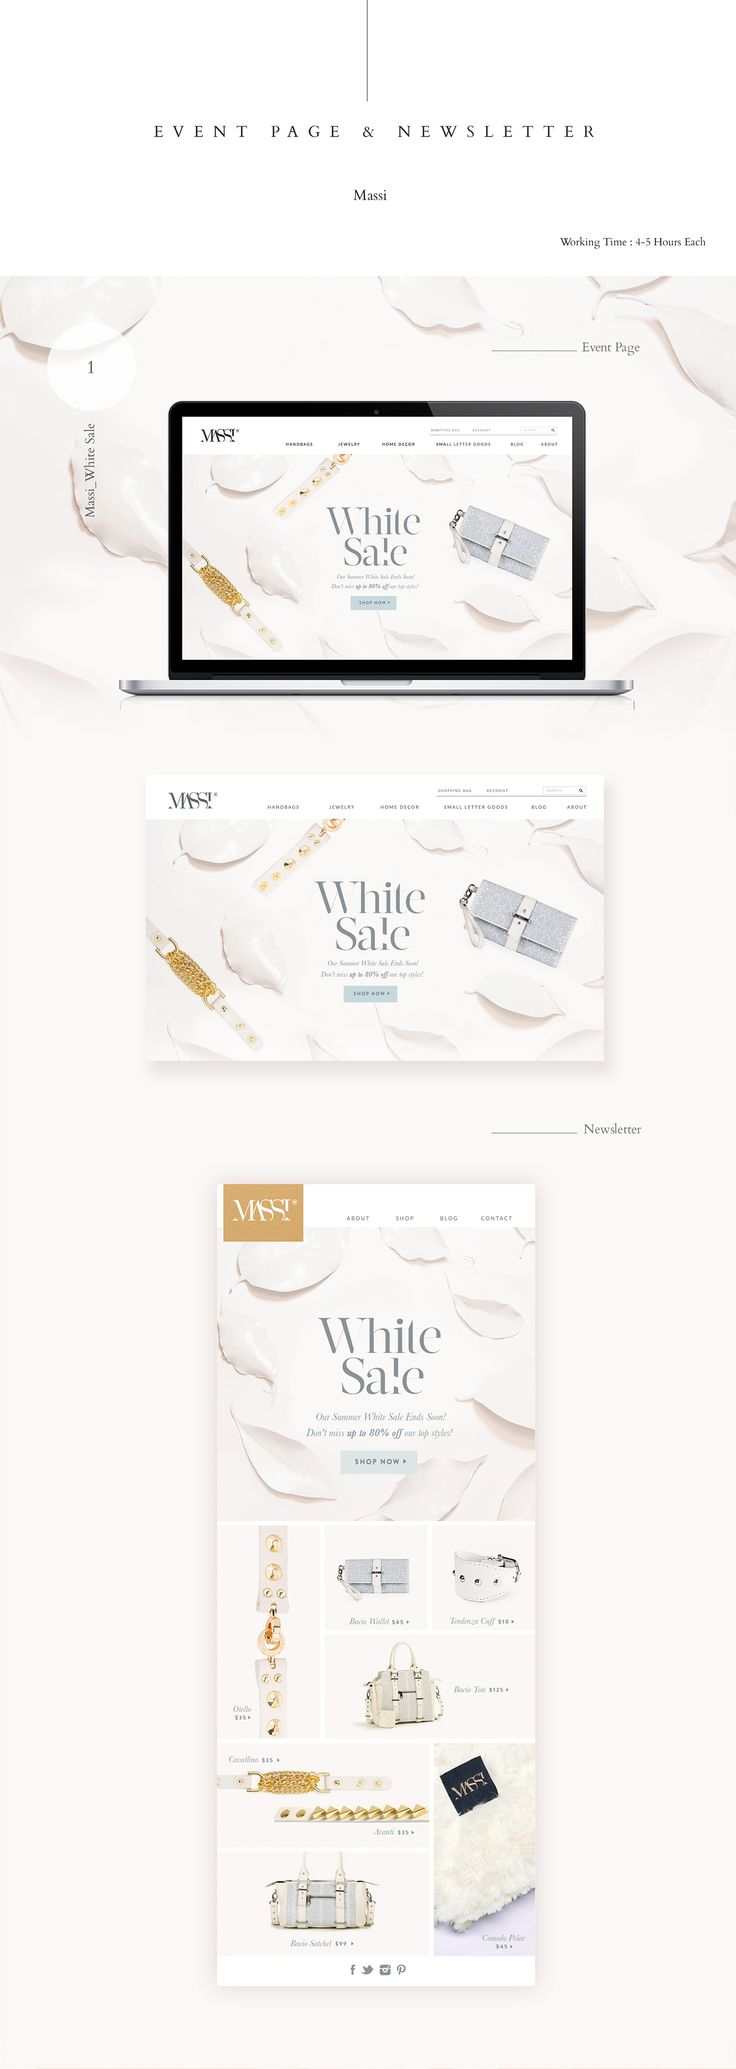 Massi_Event Page/Newsletter on Behance